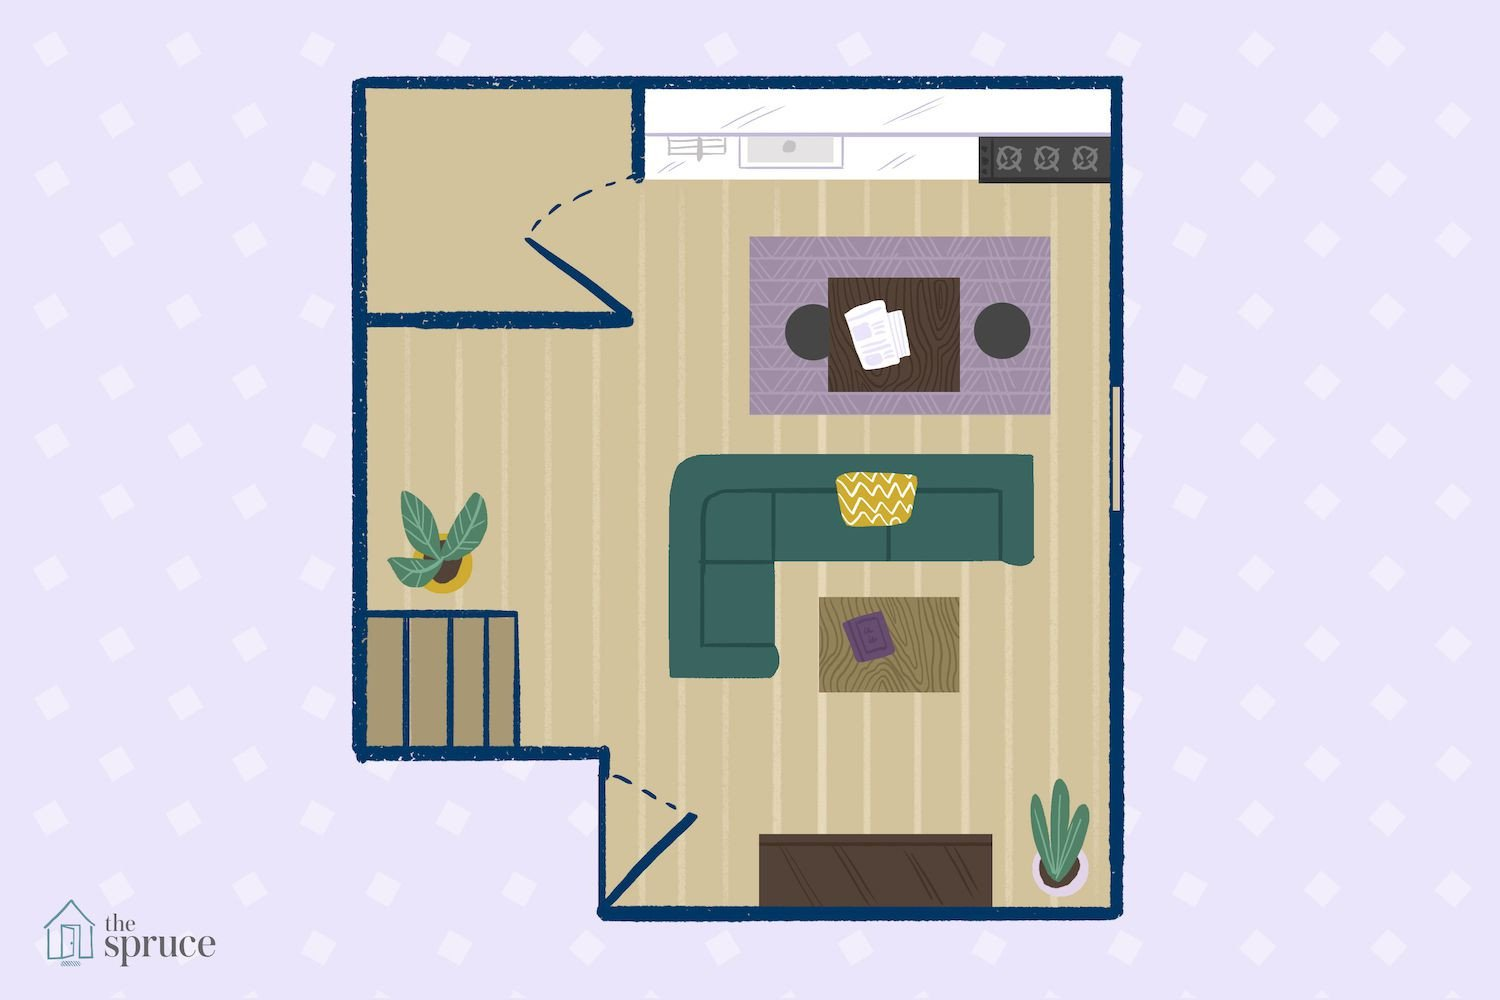 12x12 Bedroom Furniture Layout Beautiful Furniture Arrangement Ideas for A Small Living Room